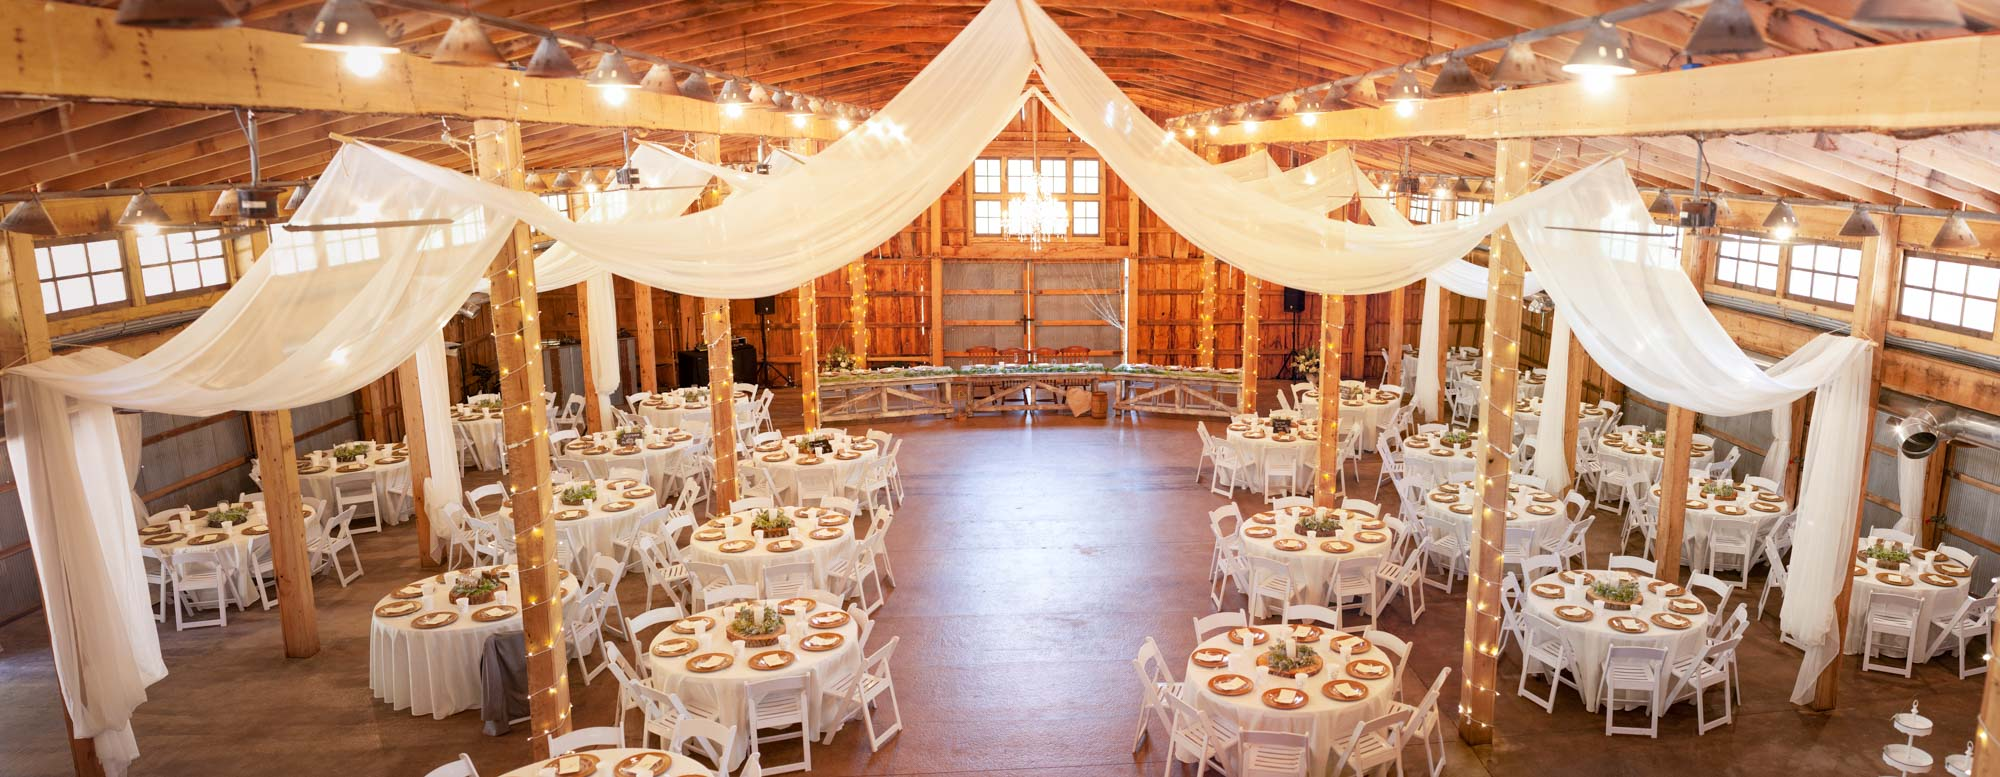 Lake of the Ozarks Wedding Venue | Where the Creeks Meet